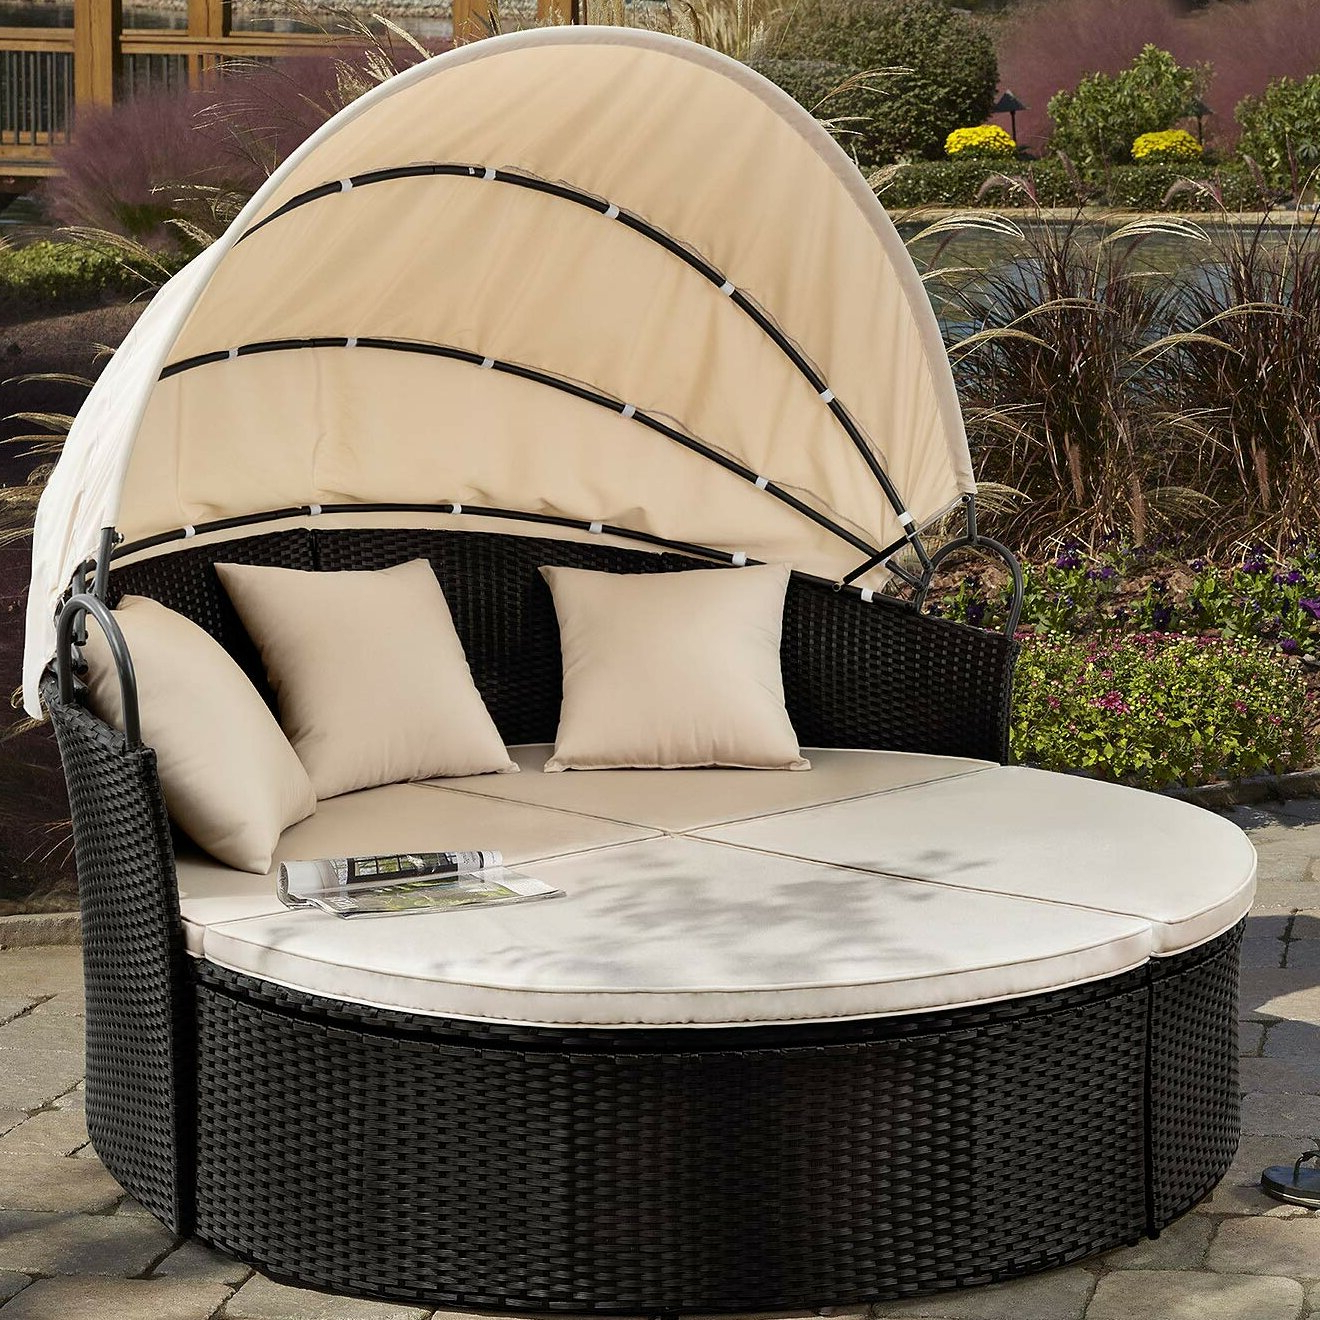 Fansler Patio Daybeds With Cushions Inside 2020 Leiston Round Patio Daybed With Cushions (View 8 of 20)